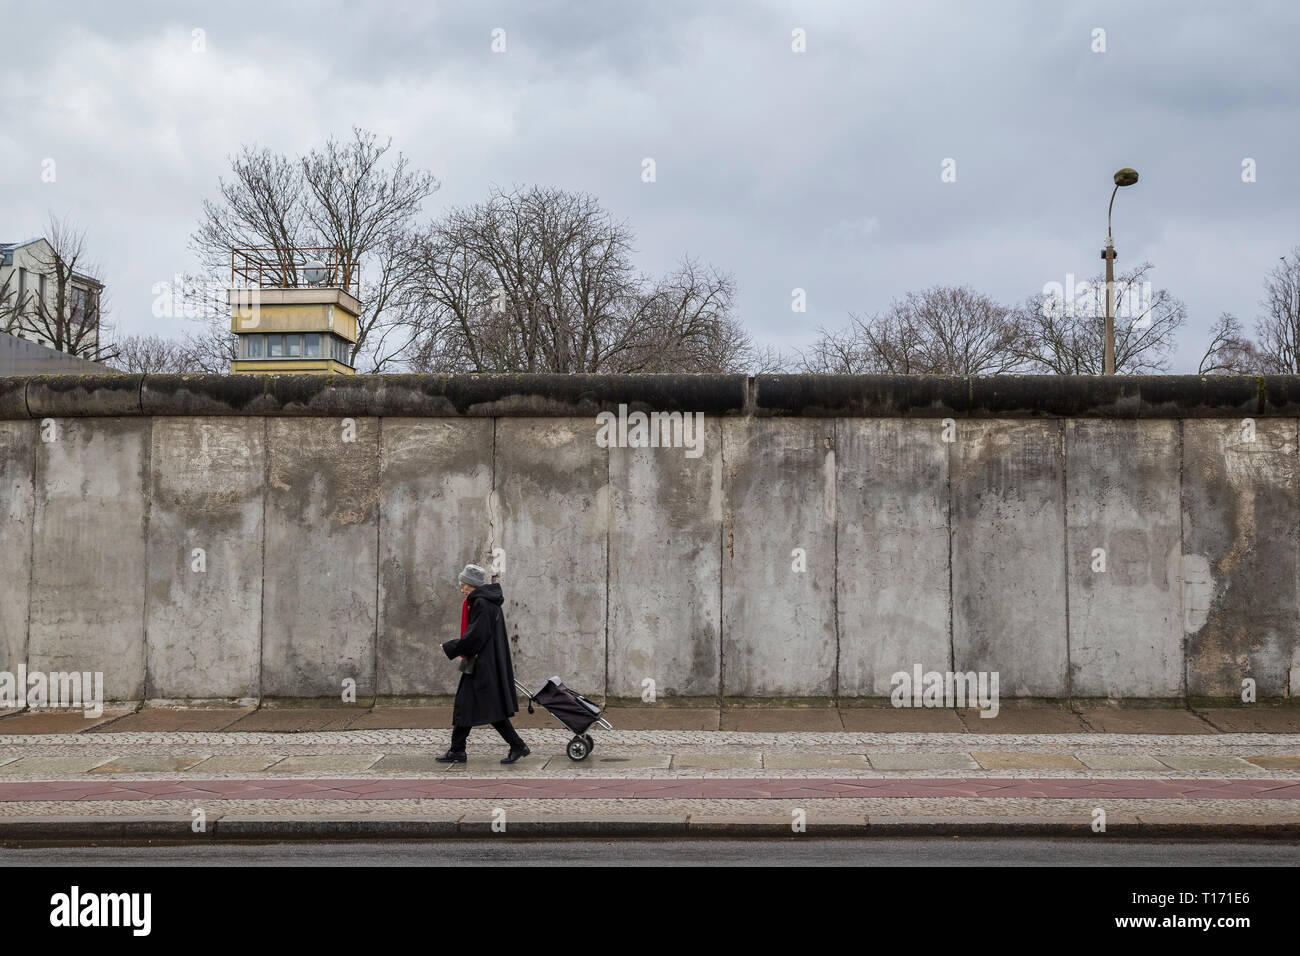 Old woman walking in front view of the original Berlin Wall and watchtower at the Berlin Wall Memorial (Berliner Mauer) in Berlin, Germany. - Stock Image